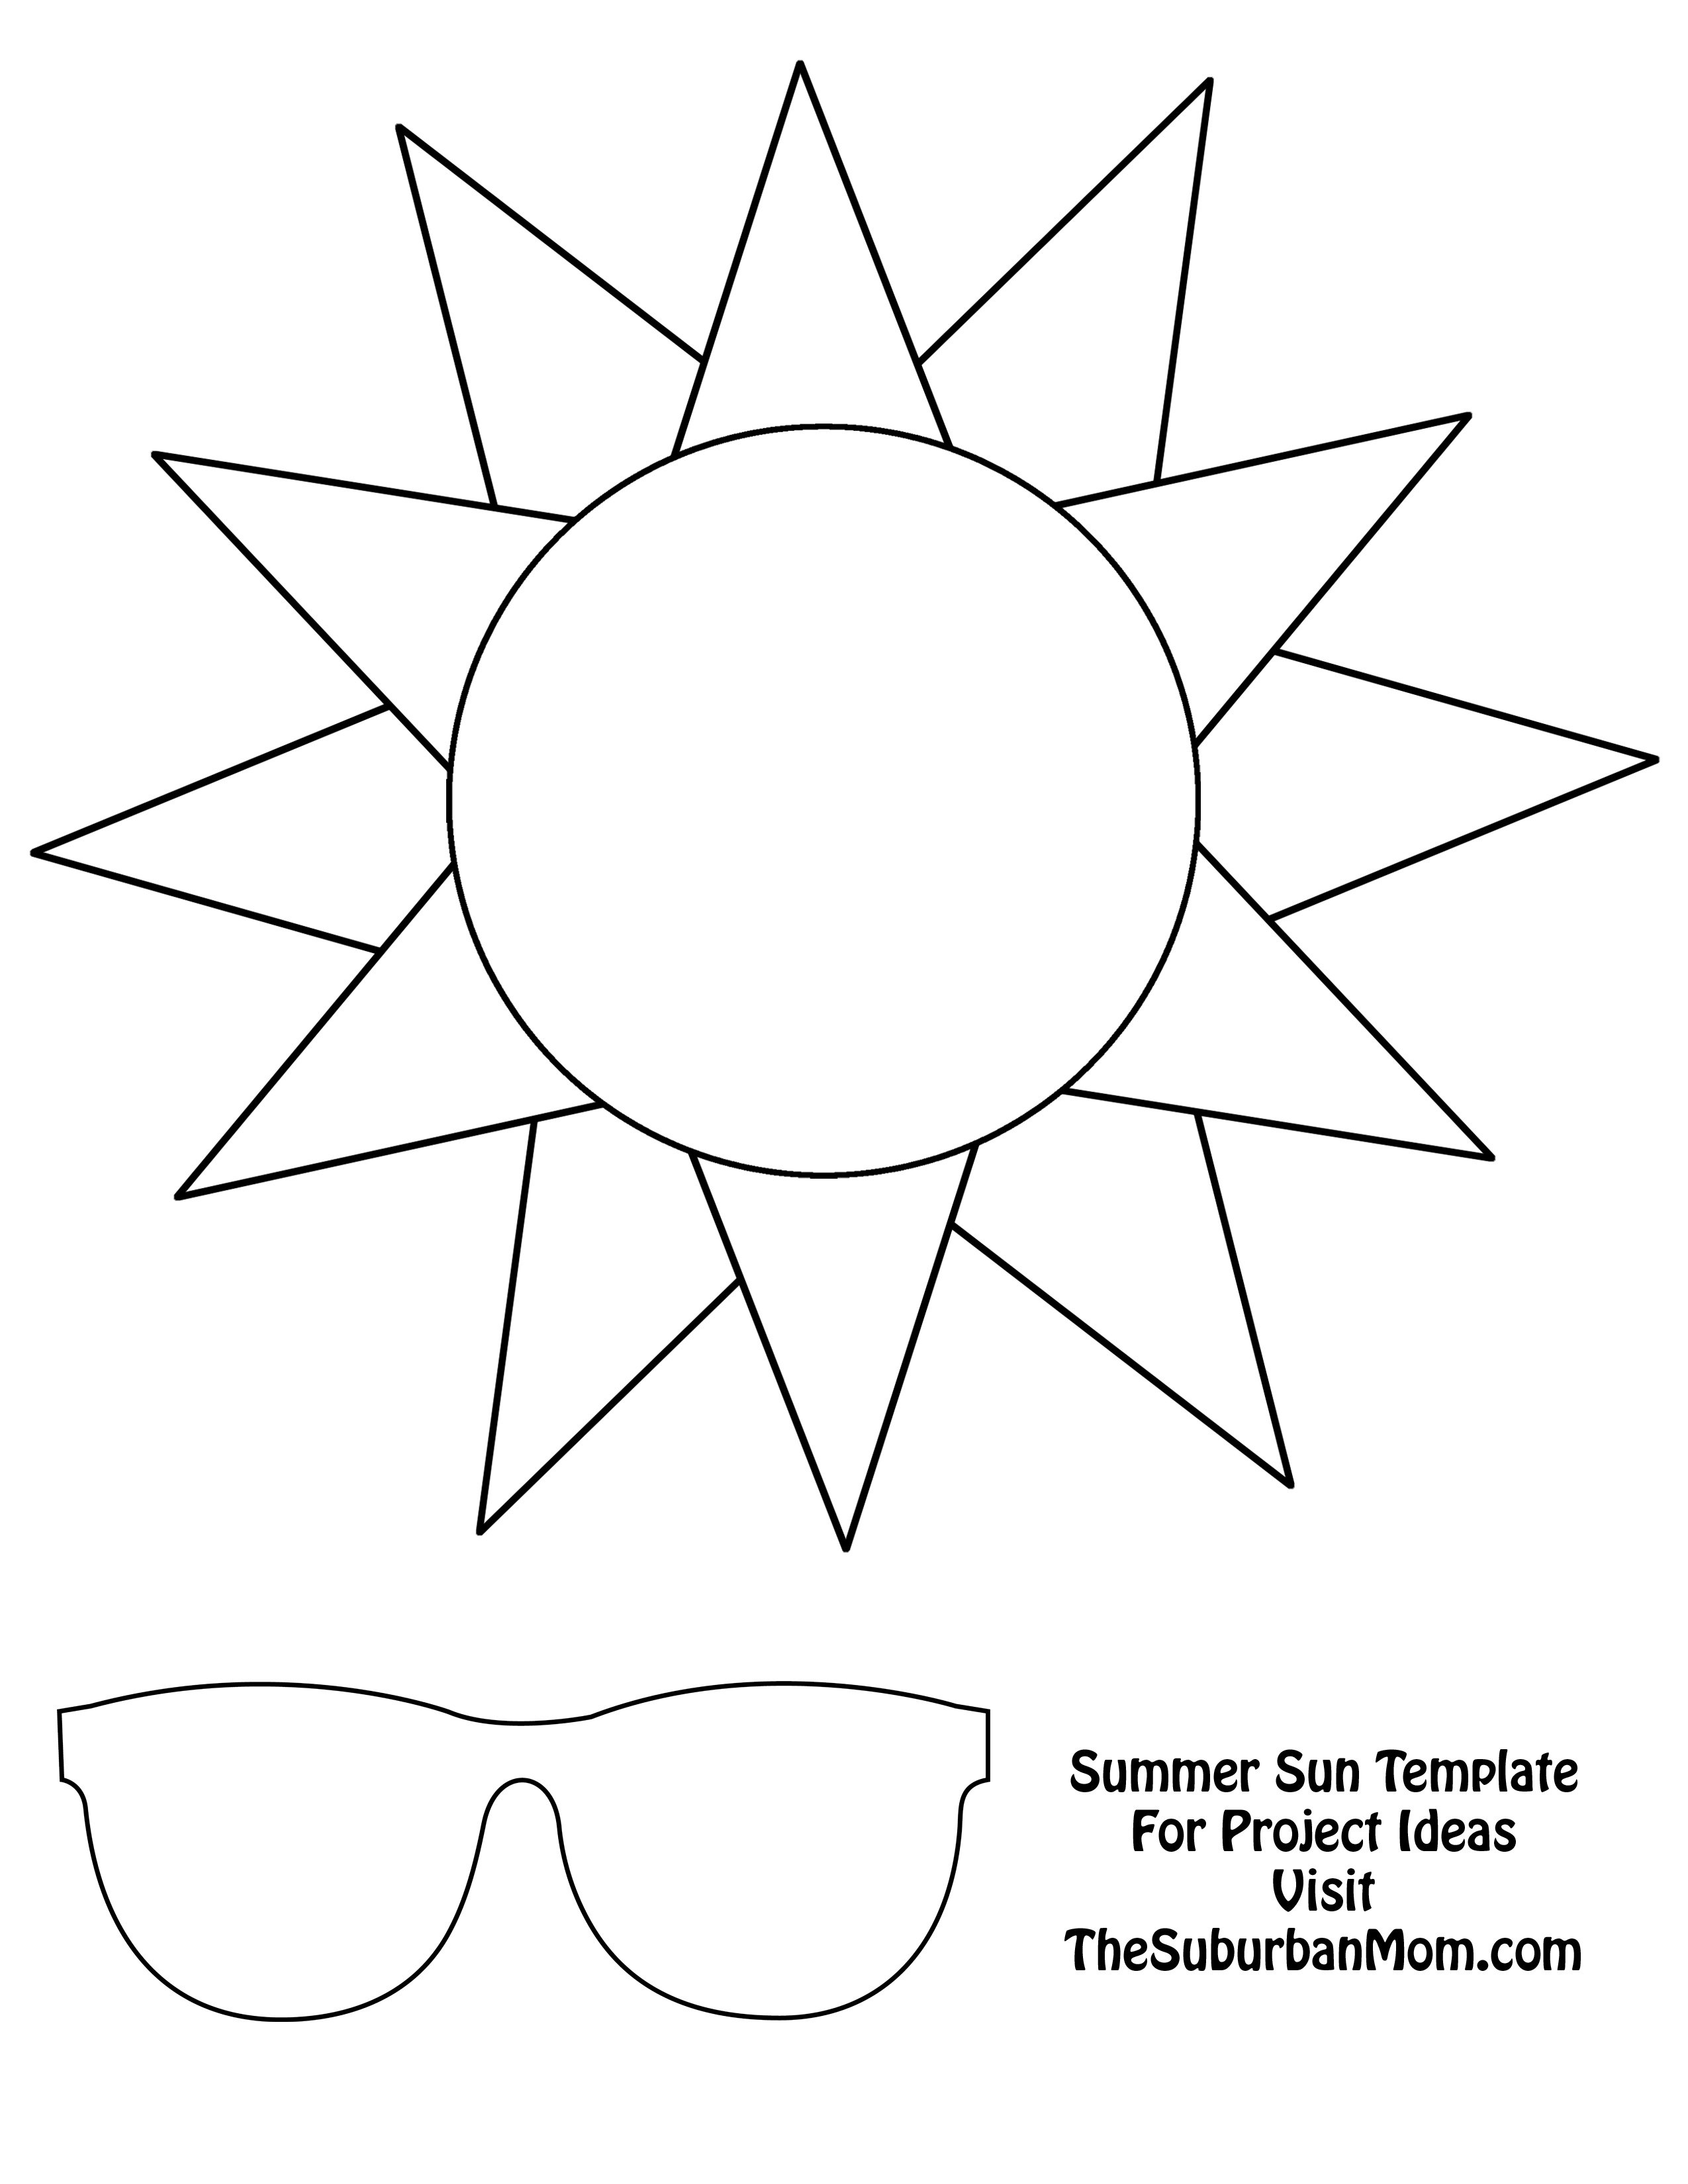 paper cutting templates for kids - countdown to summer craft template thesuburbanmom